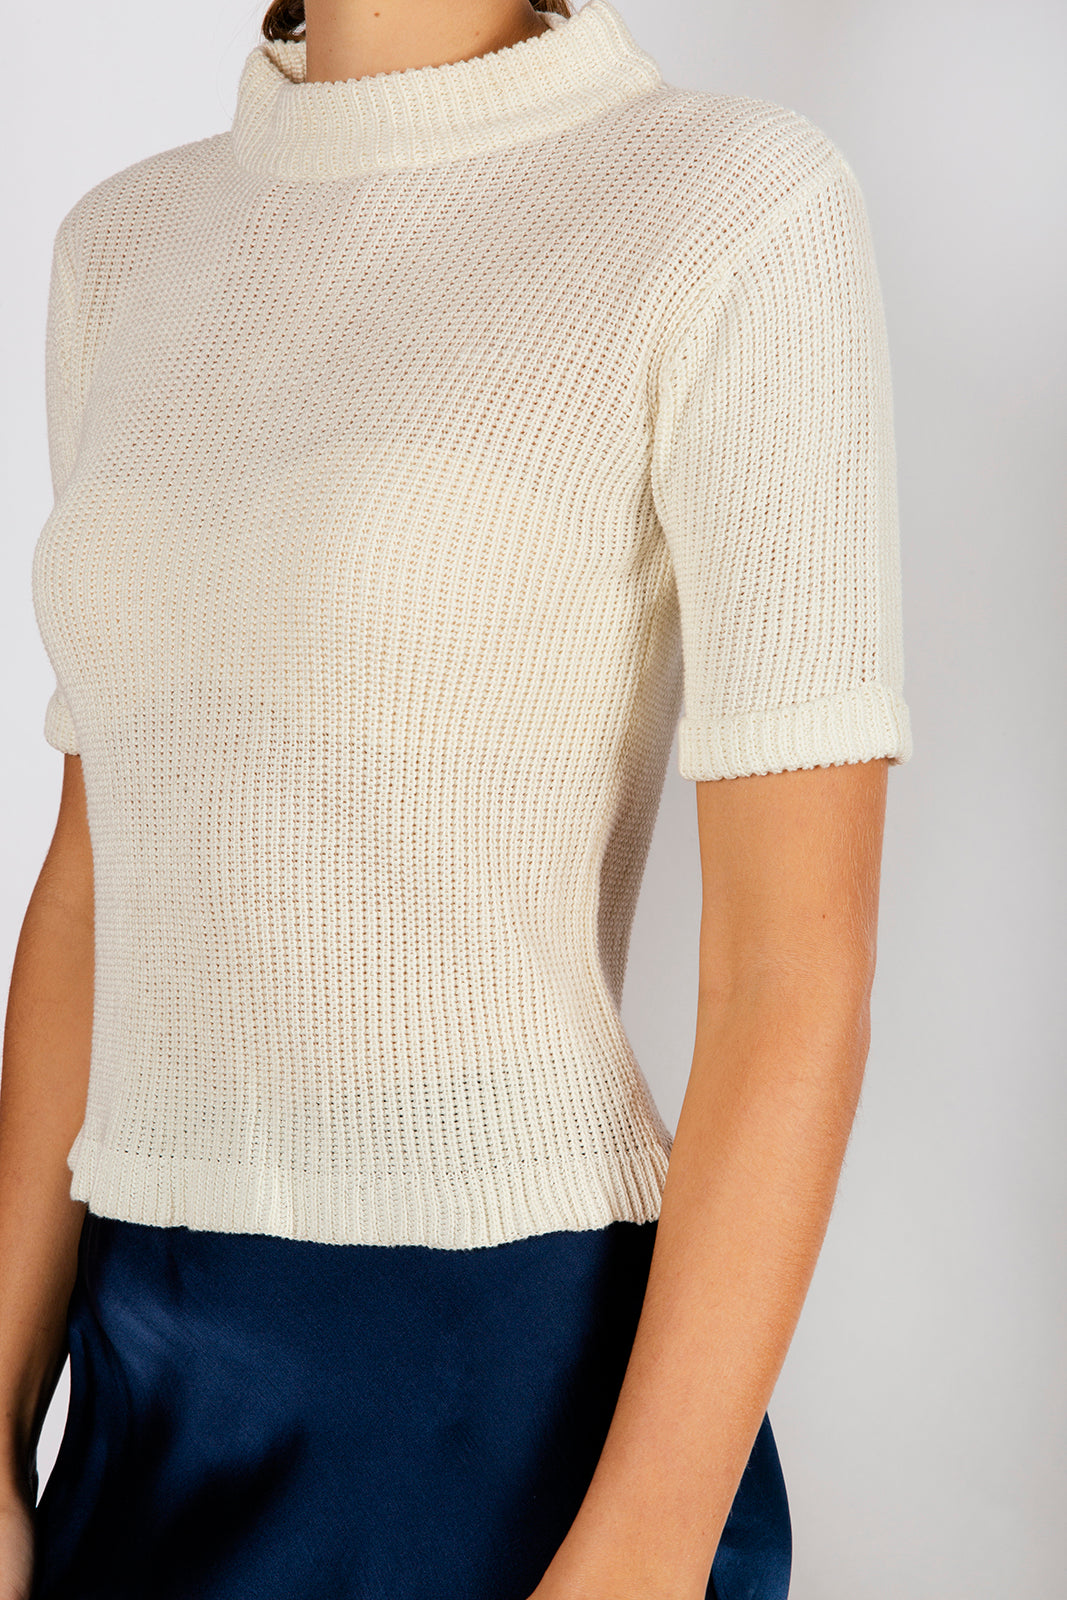 PITERA KNIT TEE - OFF WHITE